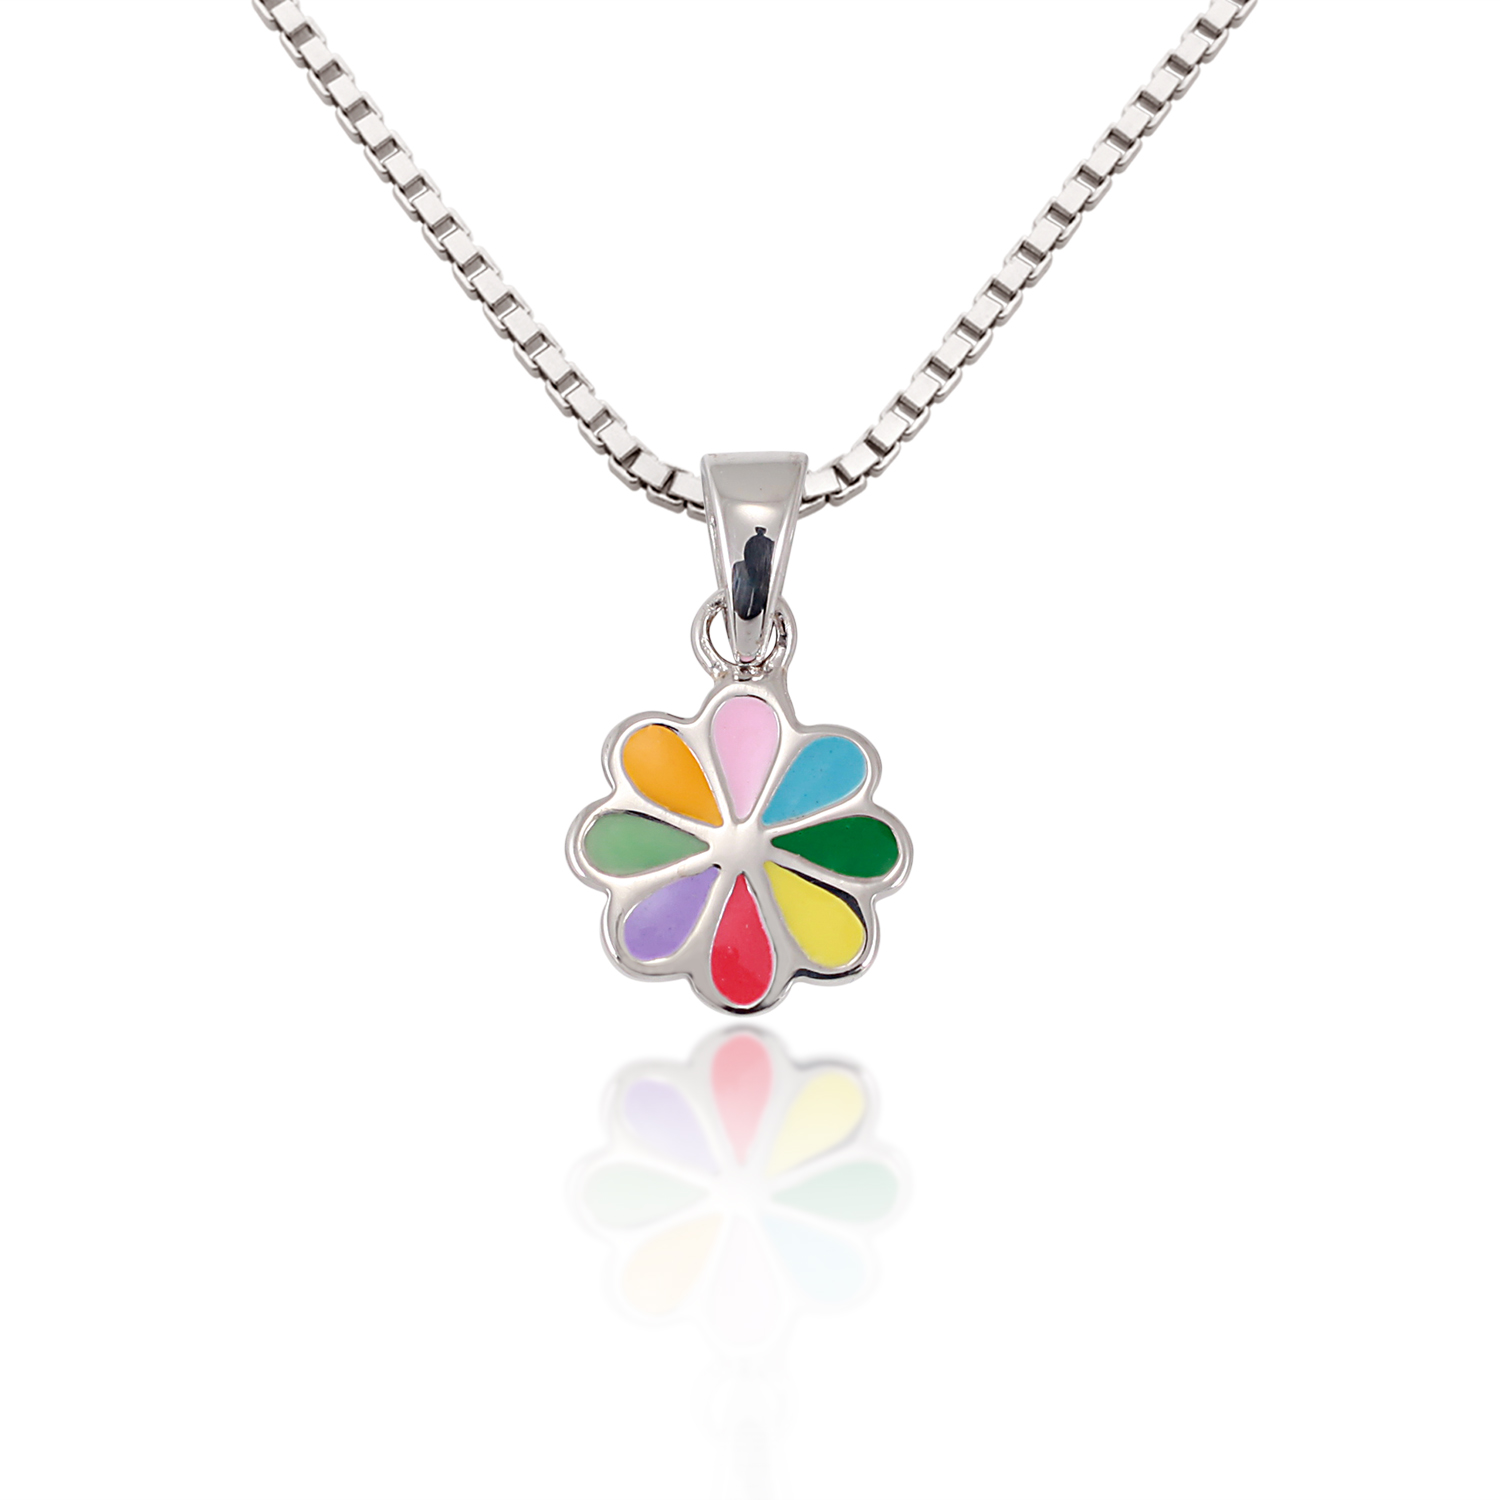 Children's 925 Sterling Silver Multi-Colored Sunflower Pendant Necklace, 13-15 inches